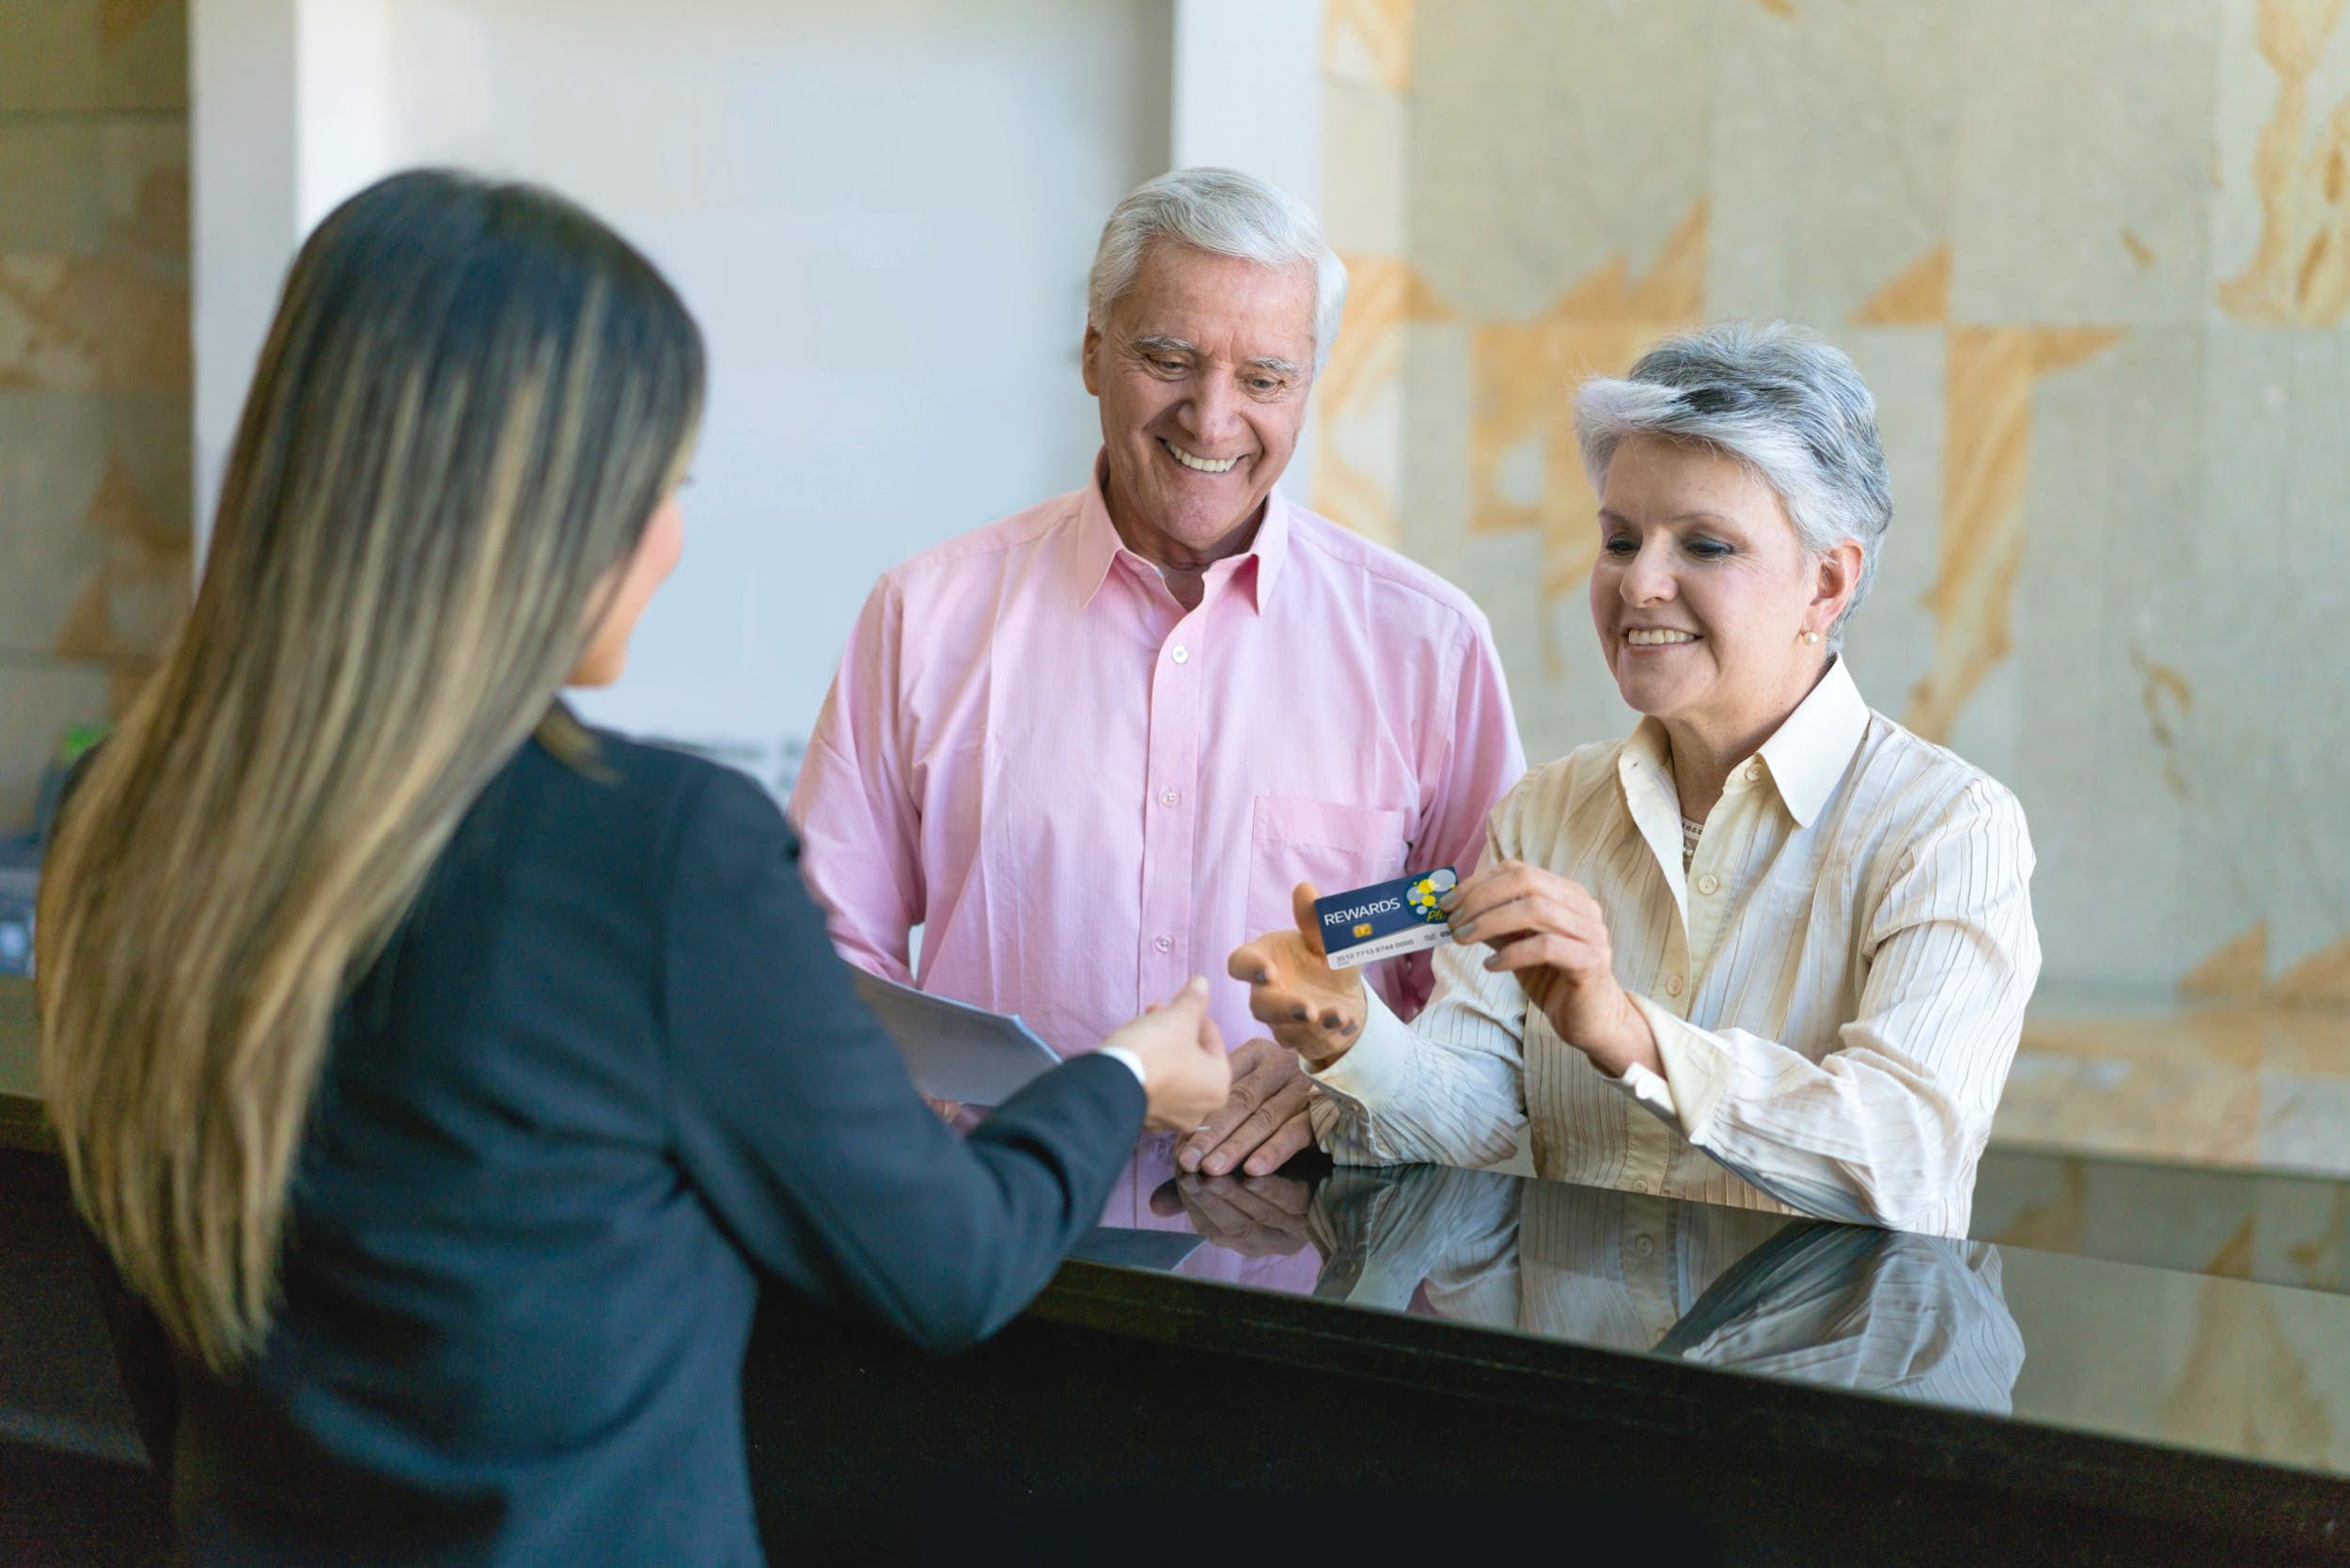 An older couple handing a card to a hotel receptionist